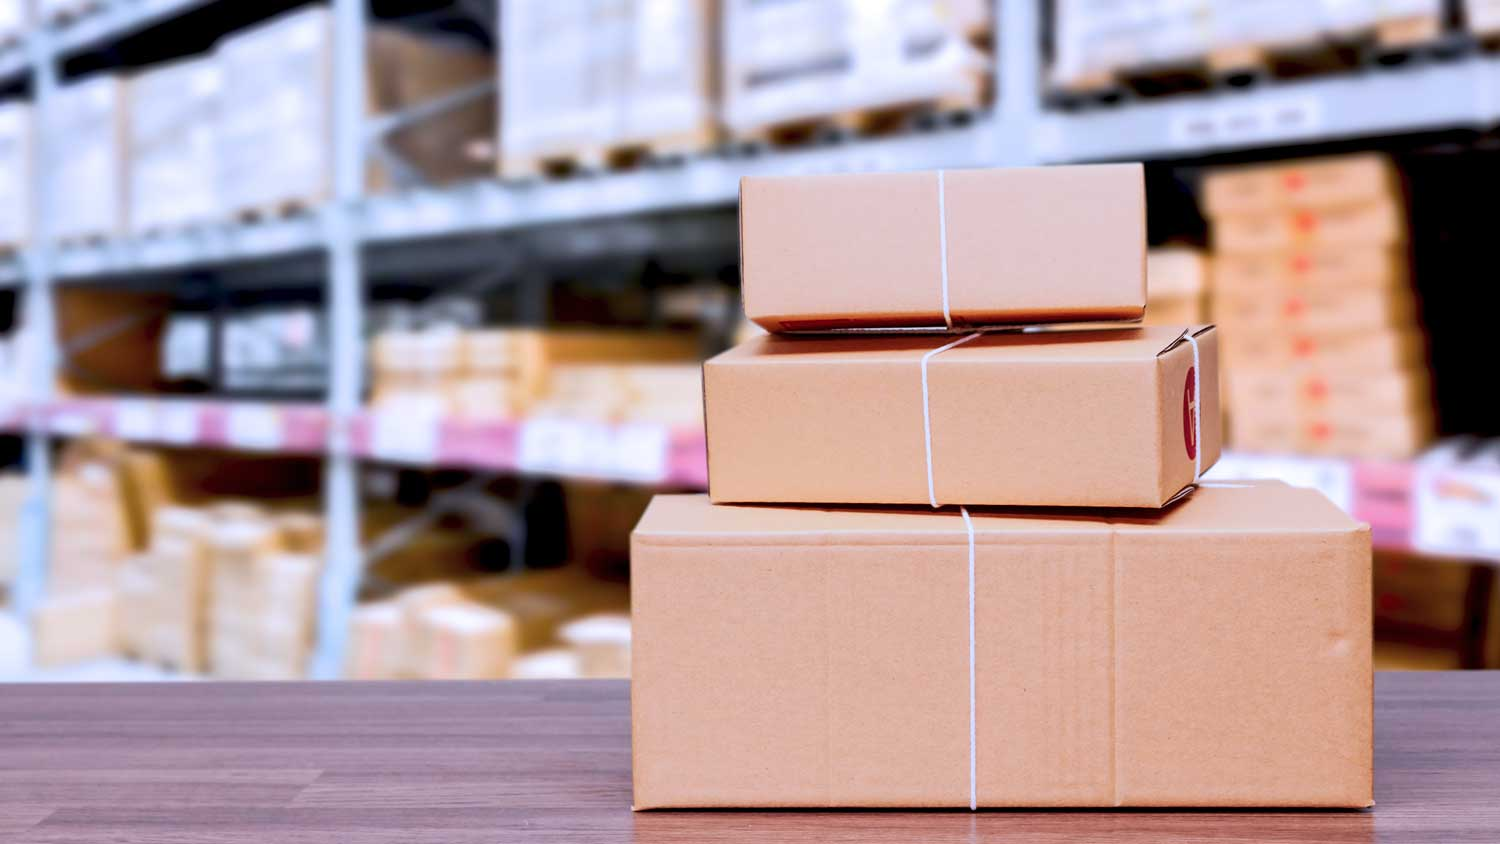 EMPOWER YOUR WAREHOUSE AND MAKE THE LAST MILE SHORTER